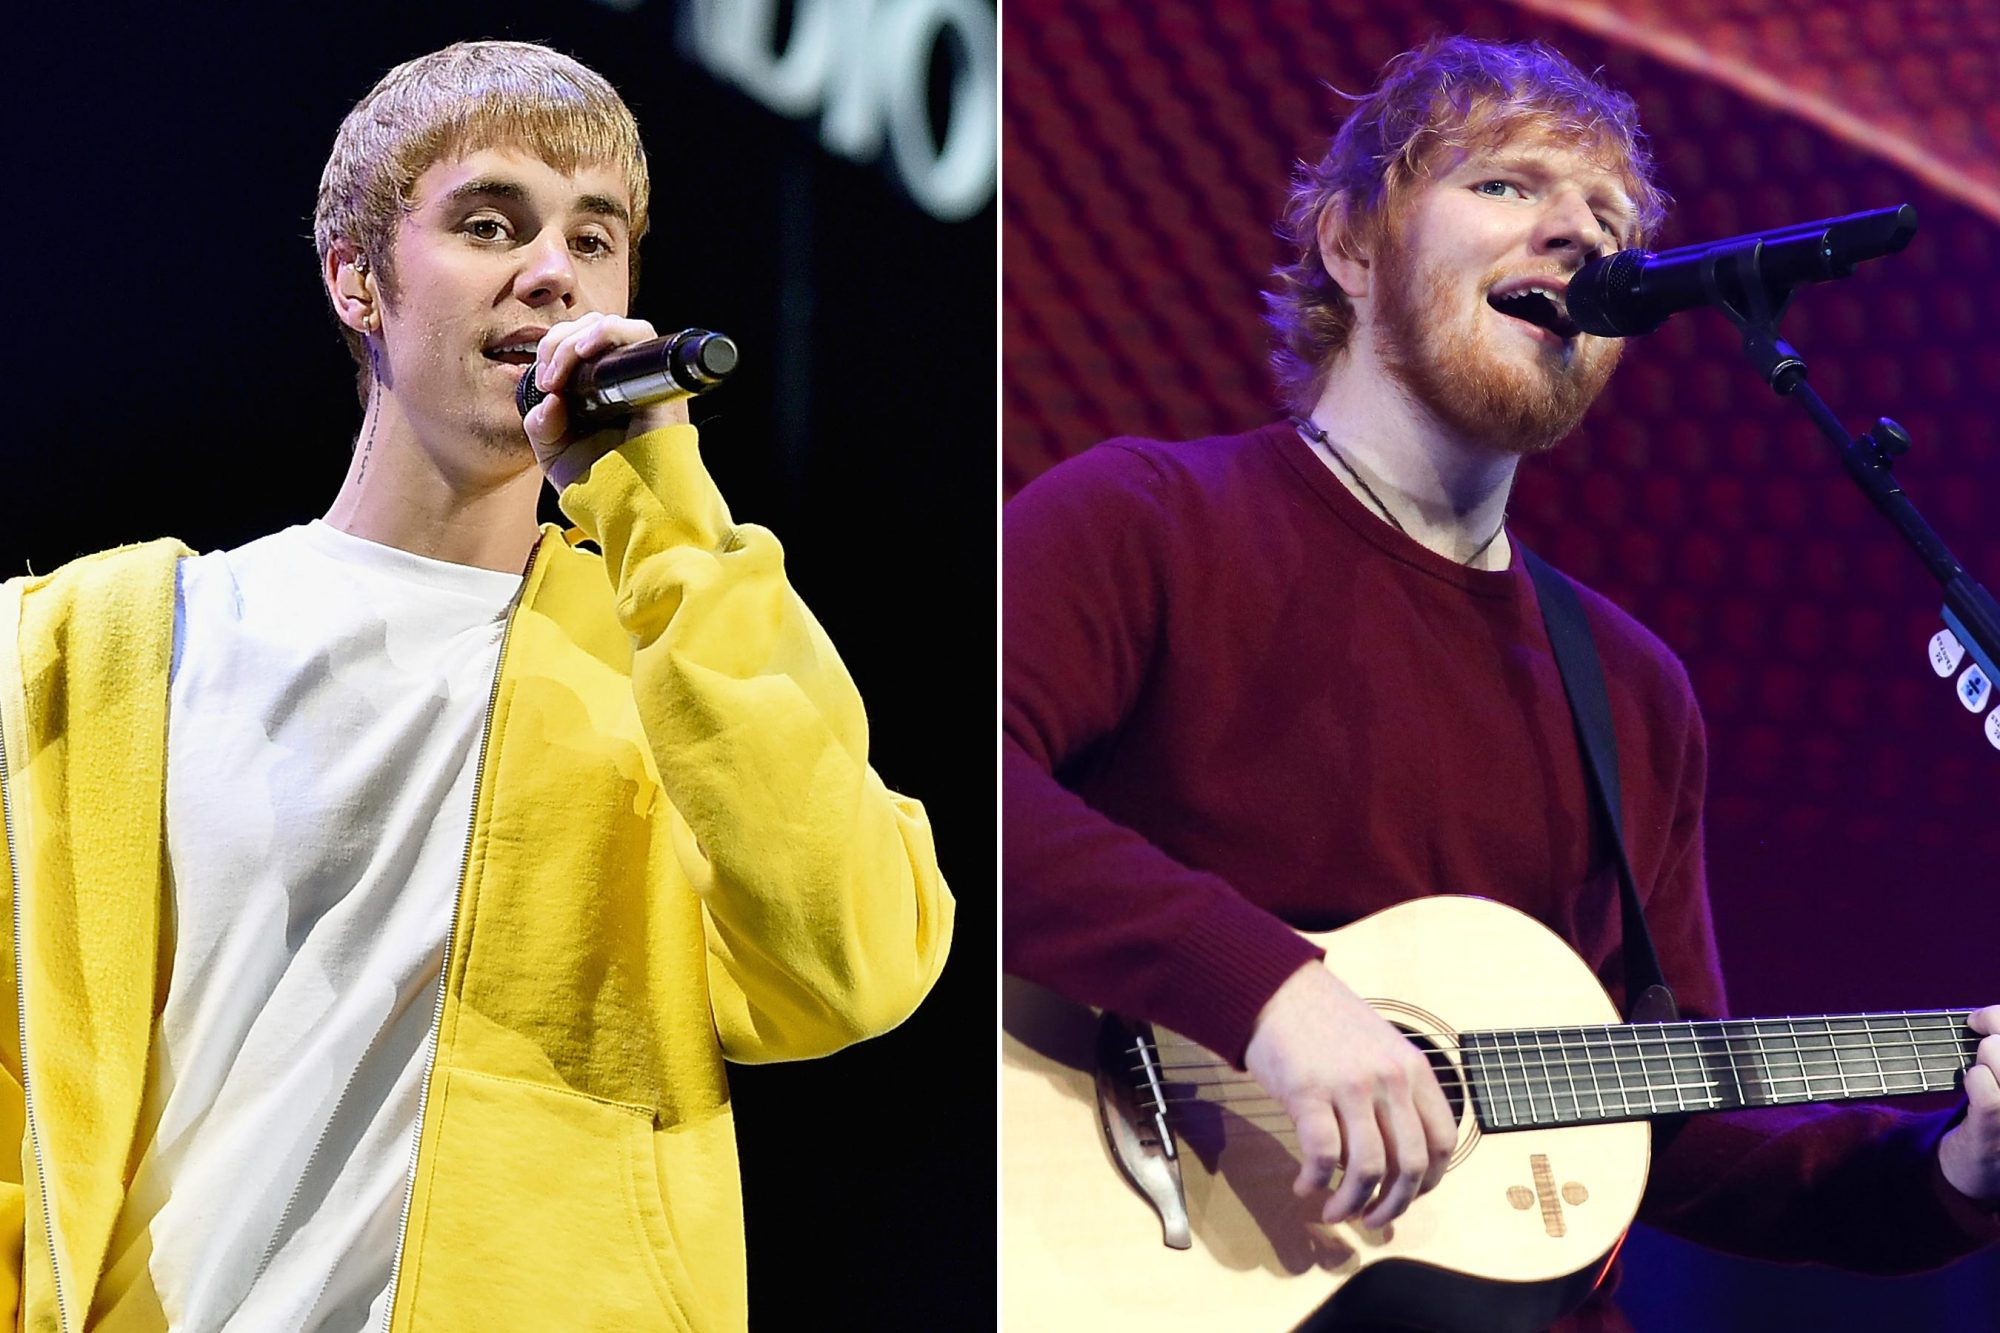 LOS ANGELES, CA - DECEMBER 02: Singer Justin Bieber performs onstage during 102.7 KIIS FM's Jingle Ball 2016 presented by Capital One at Staples Center on December 2, 2016 in Los Angeles, California. (Photo by Mike Windle/Getty Images for iHeartMedia) Ed Sheeran performs live on stage during 'Music 4 Mental Health' at The Roundhouse on November 18, 2018 in London, England. (Photo by Simone Joyner/Getty Images)